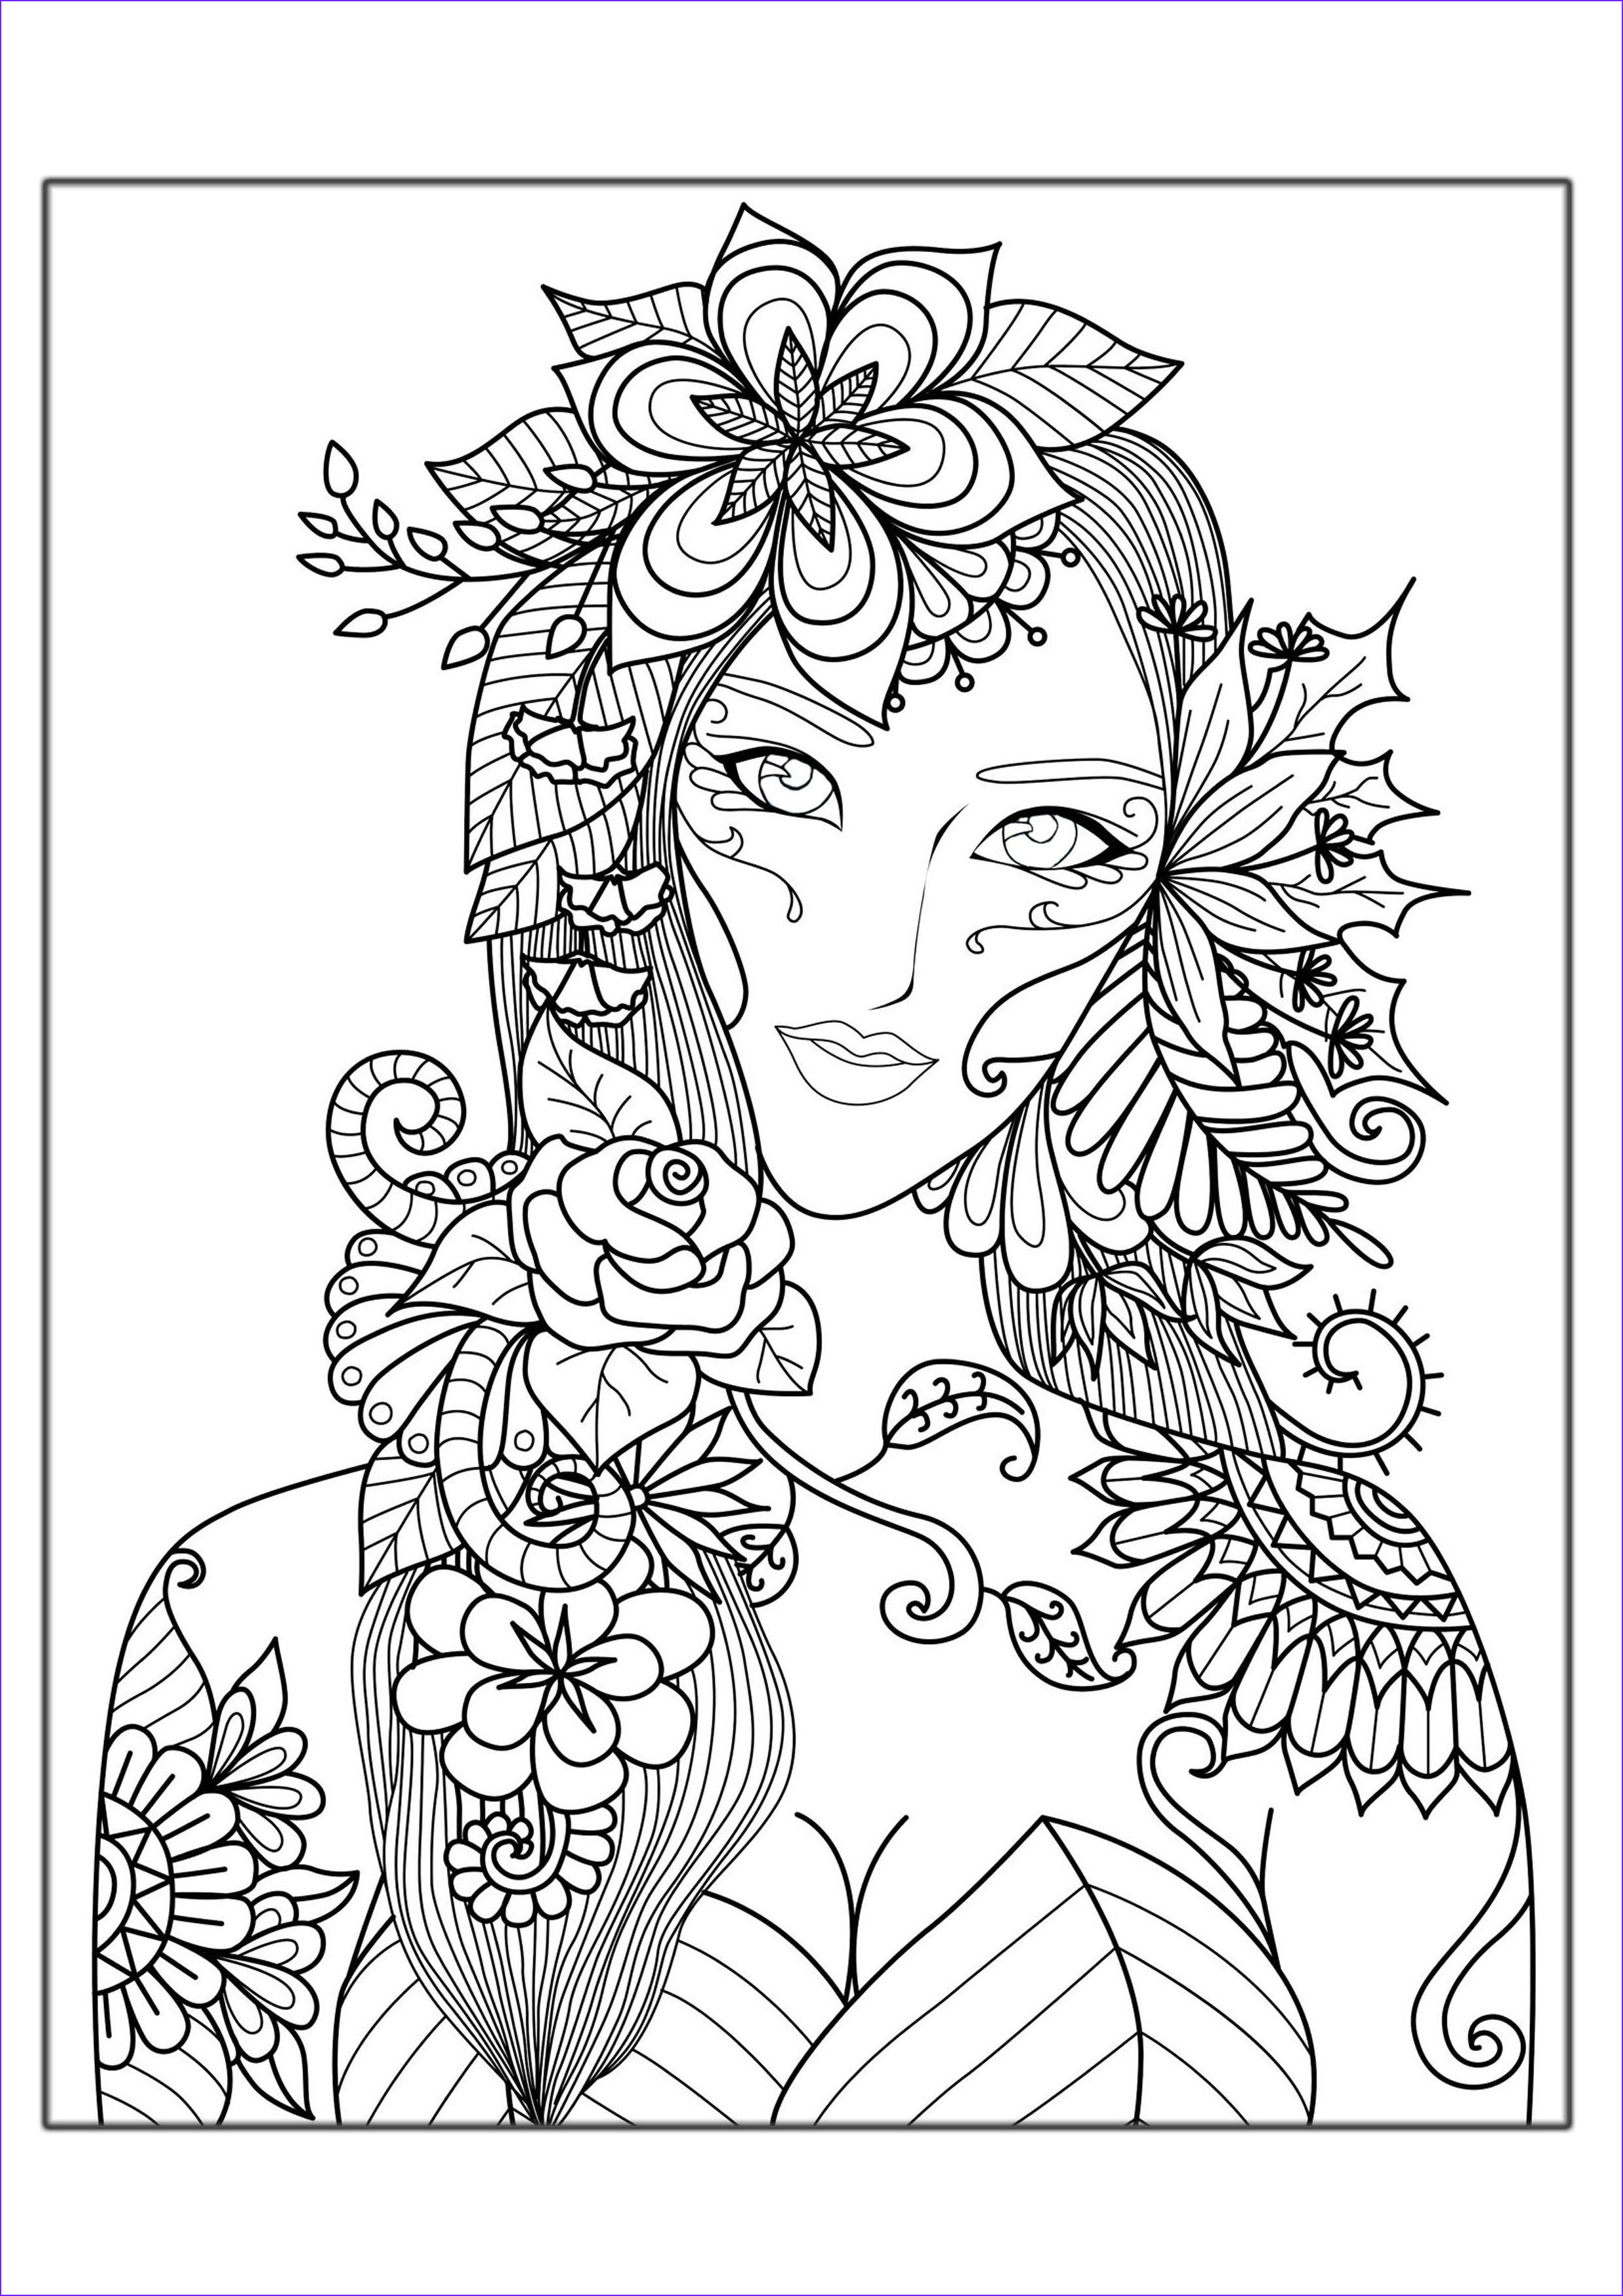 Adult Coloring Book Printable Inspirational Photos Fall Coloring Pages for Adults Best Coloring Pages for Kids